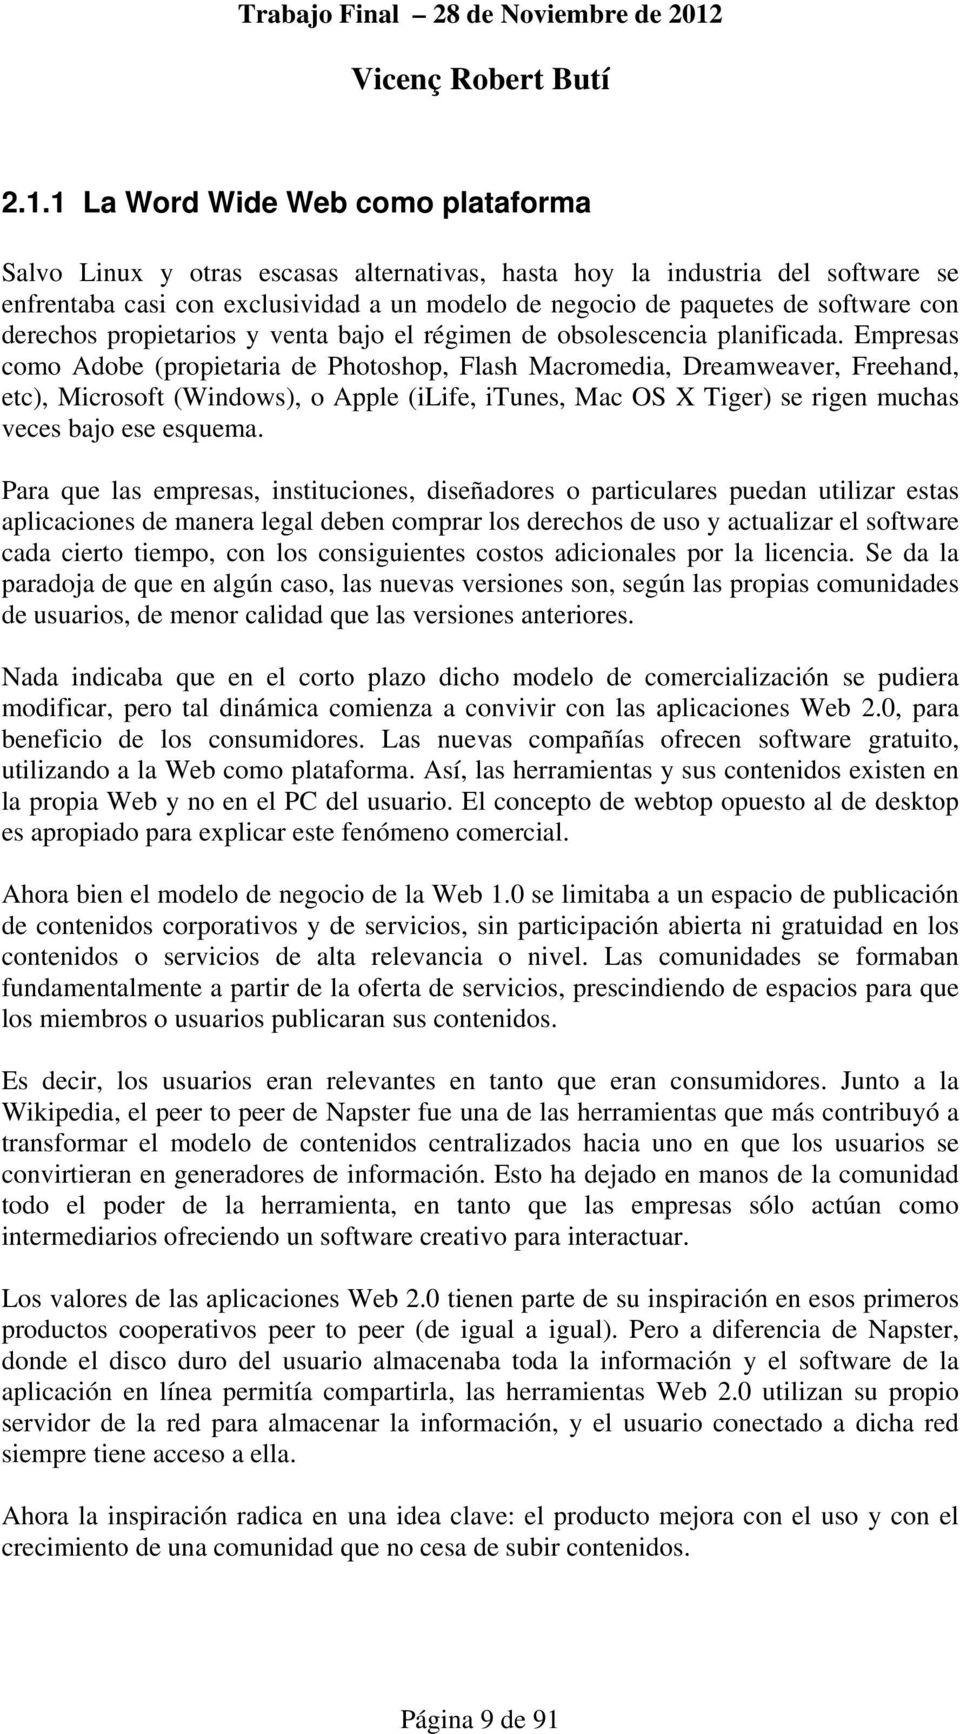 Empresas como Adobe (propietaria de Photoshop, Flash Macromedia, Dreamweaver, Freehand, etc), Microsoft (Windows), o Apple (ilife, itunes, Mac OS X Tiger) se rigen muchas veces bajo ese esquema.